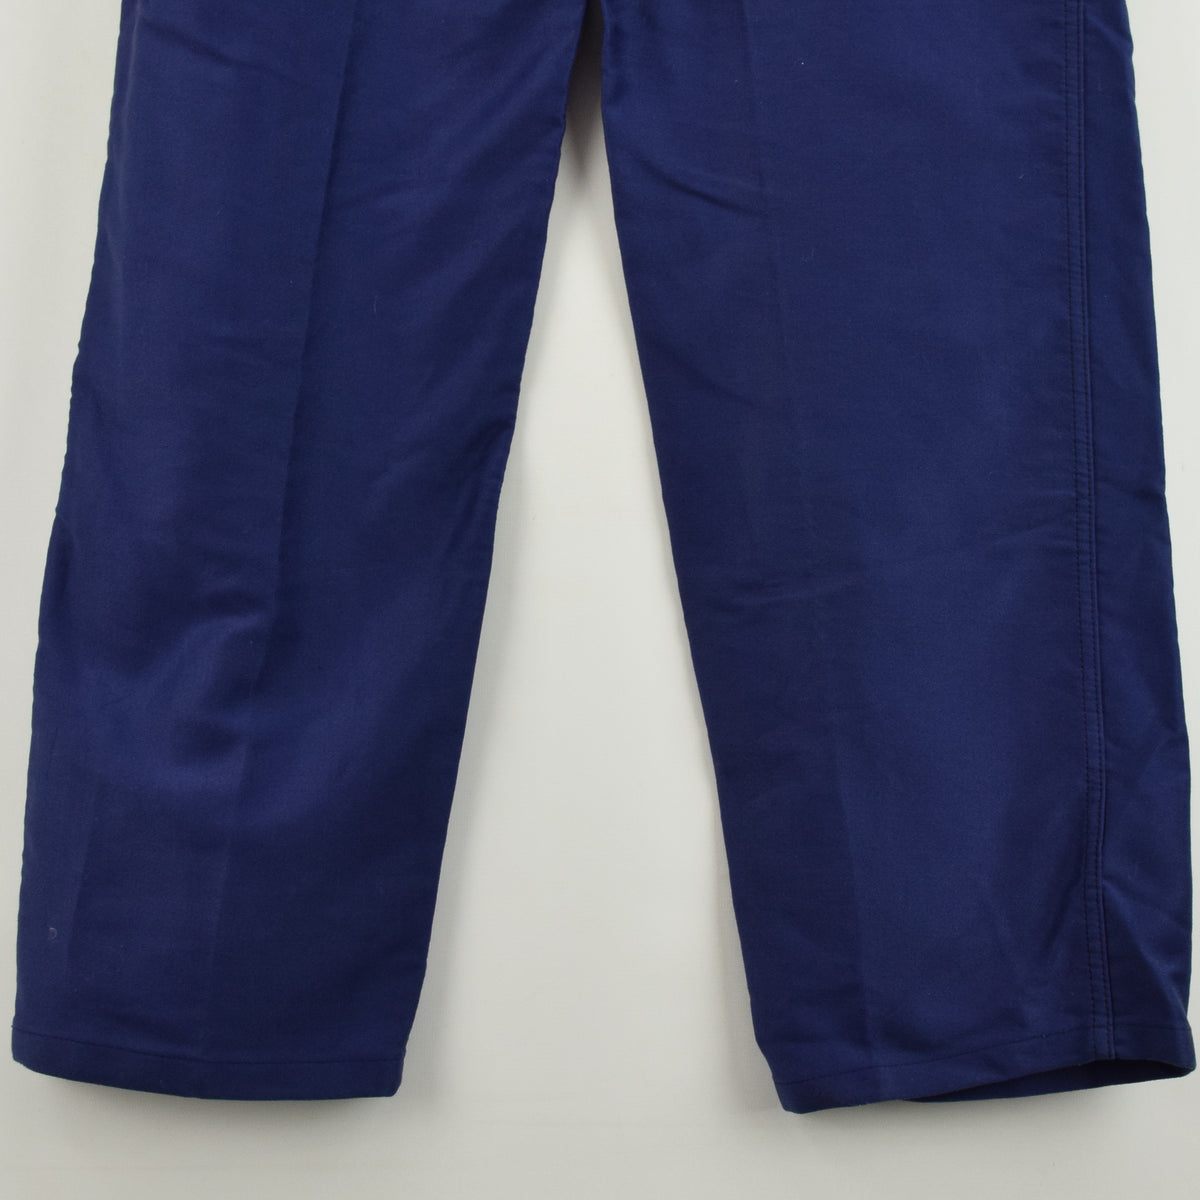 Vintage Adolphe Lafont Workwear Blue French Work Trousers 38 W 32 L back hem